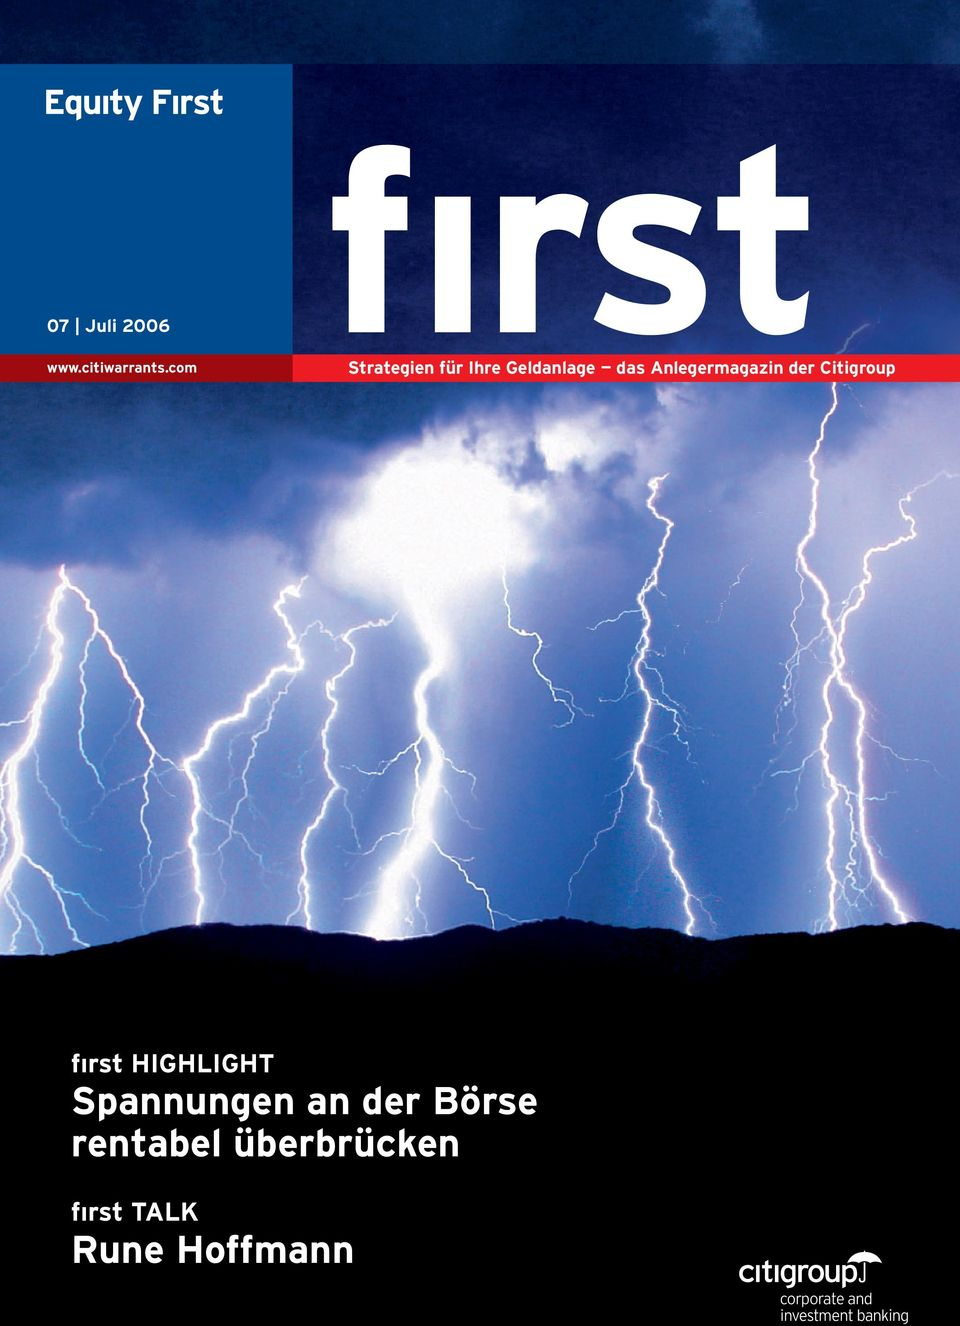 Anlegermagazin der Citigroup fırst HIGHLIGHT